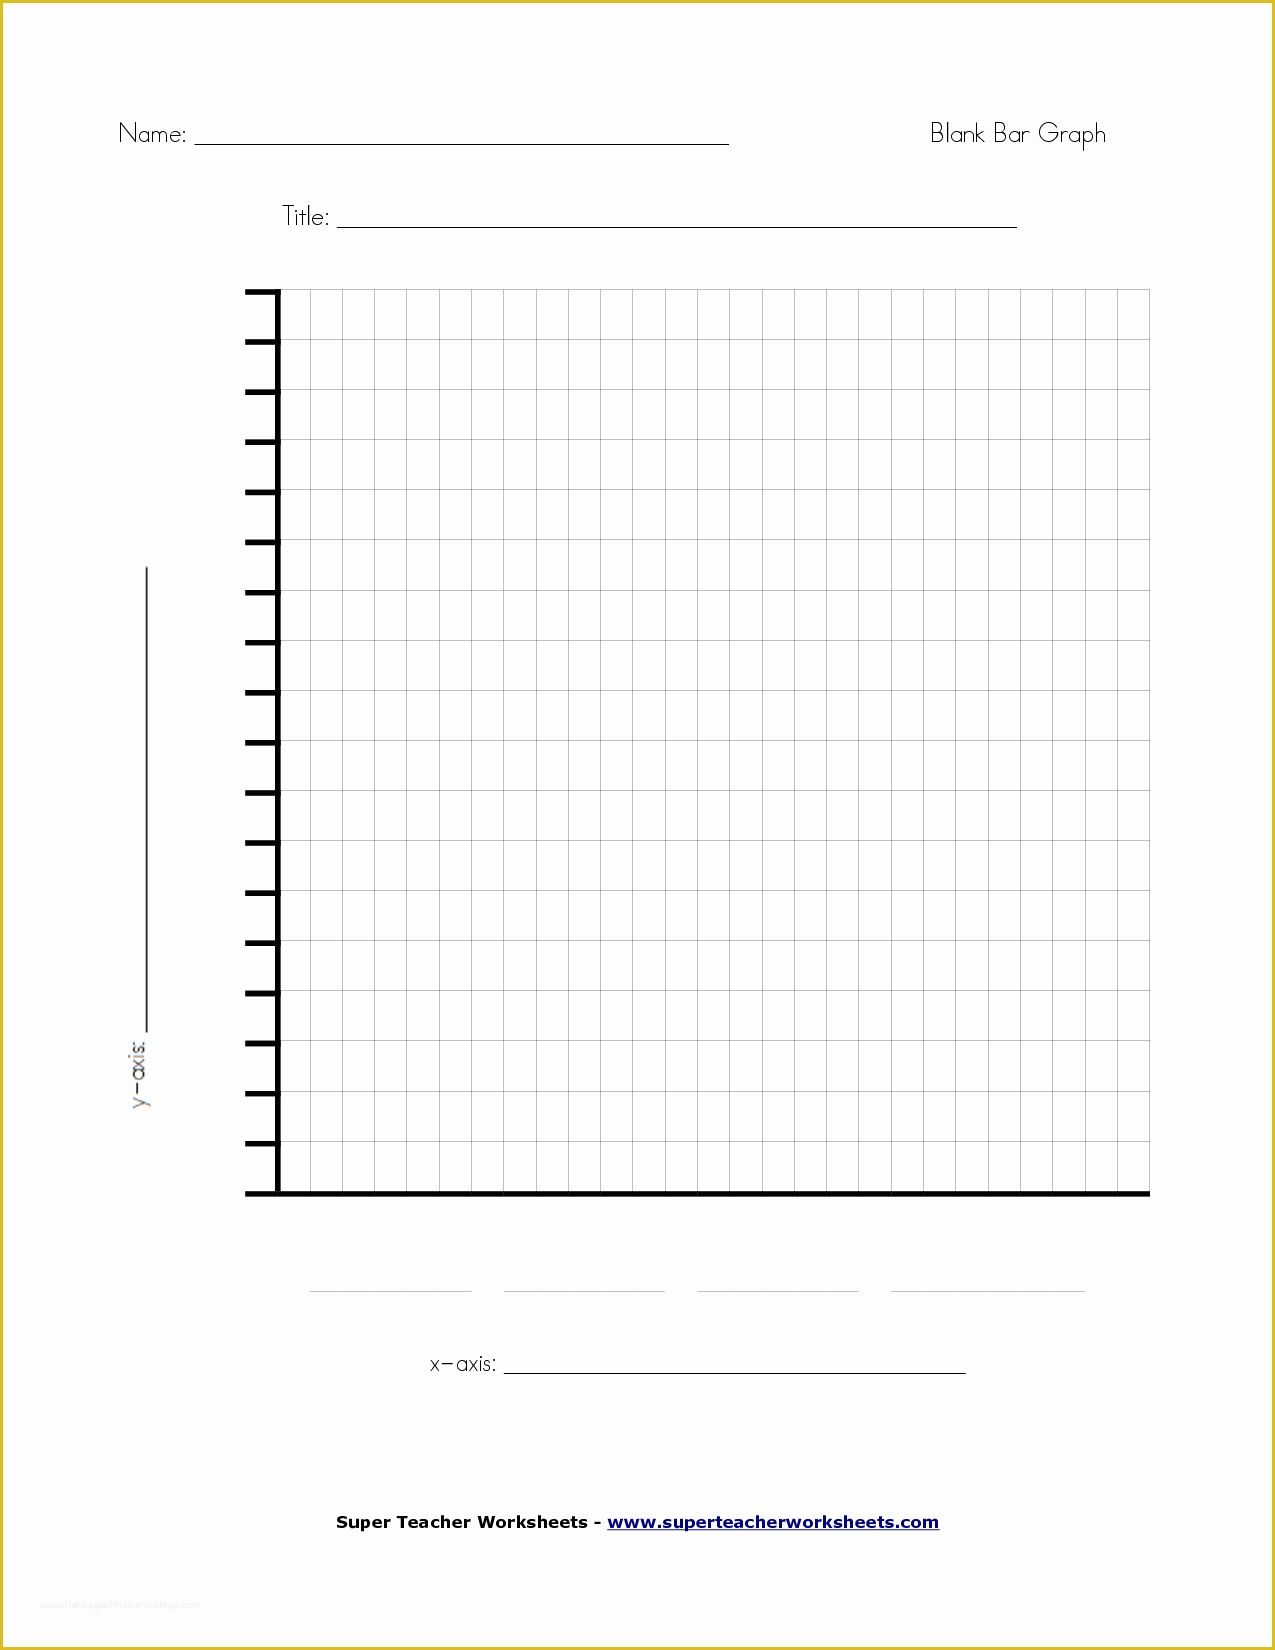 Blank Bar Graph Worksheet   Printable Worksheets and Activities for  Teachers [ 1650 x 1275 Pixel ]